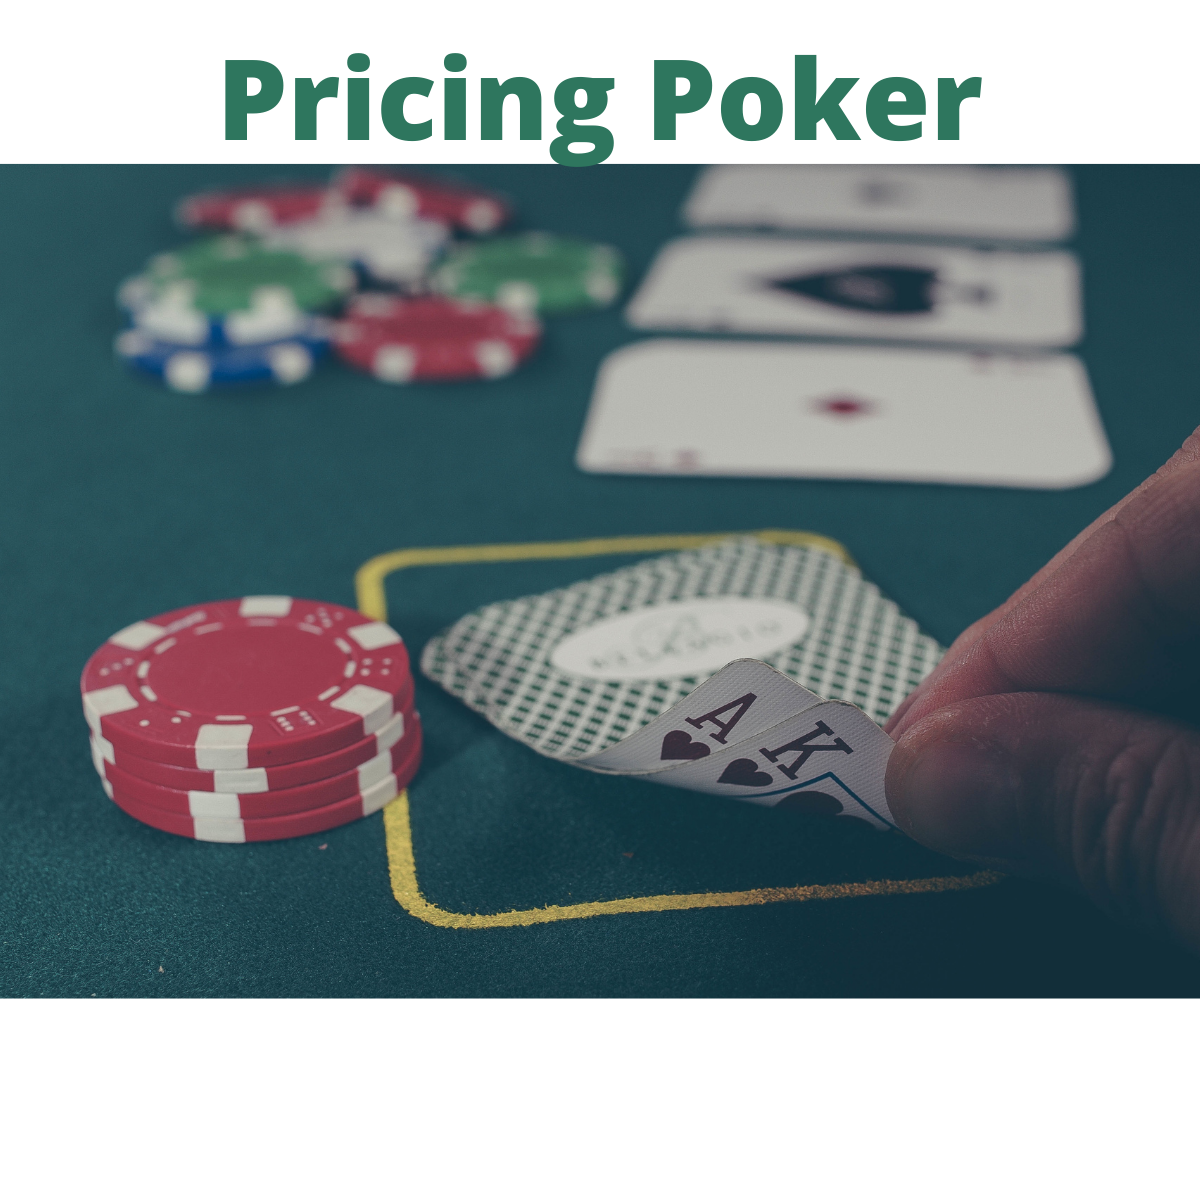 A person plays poker in a casino